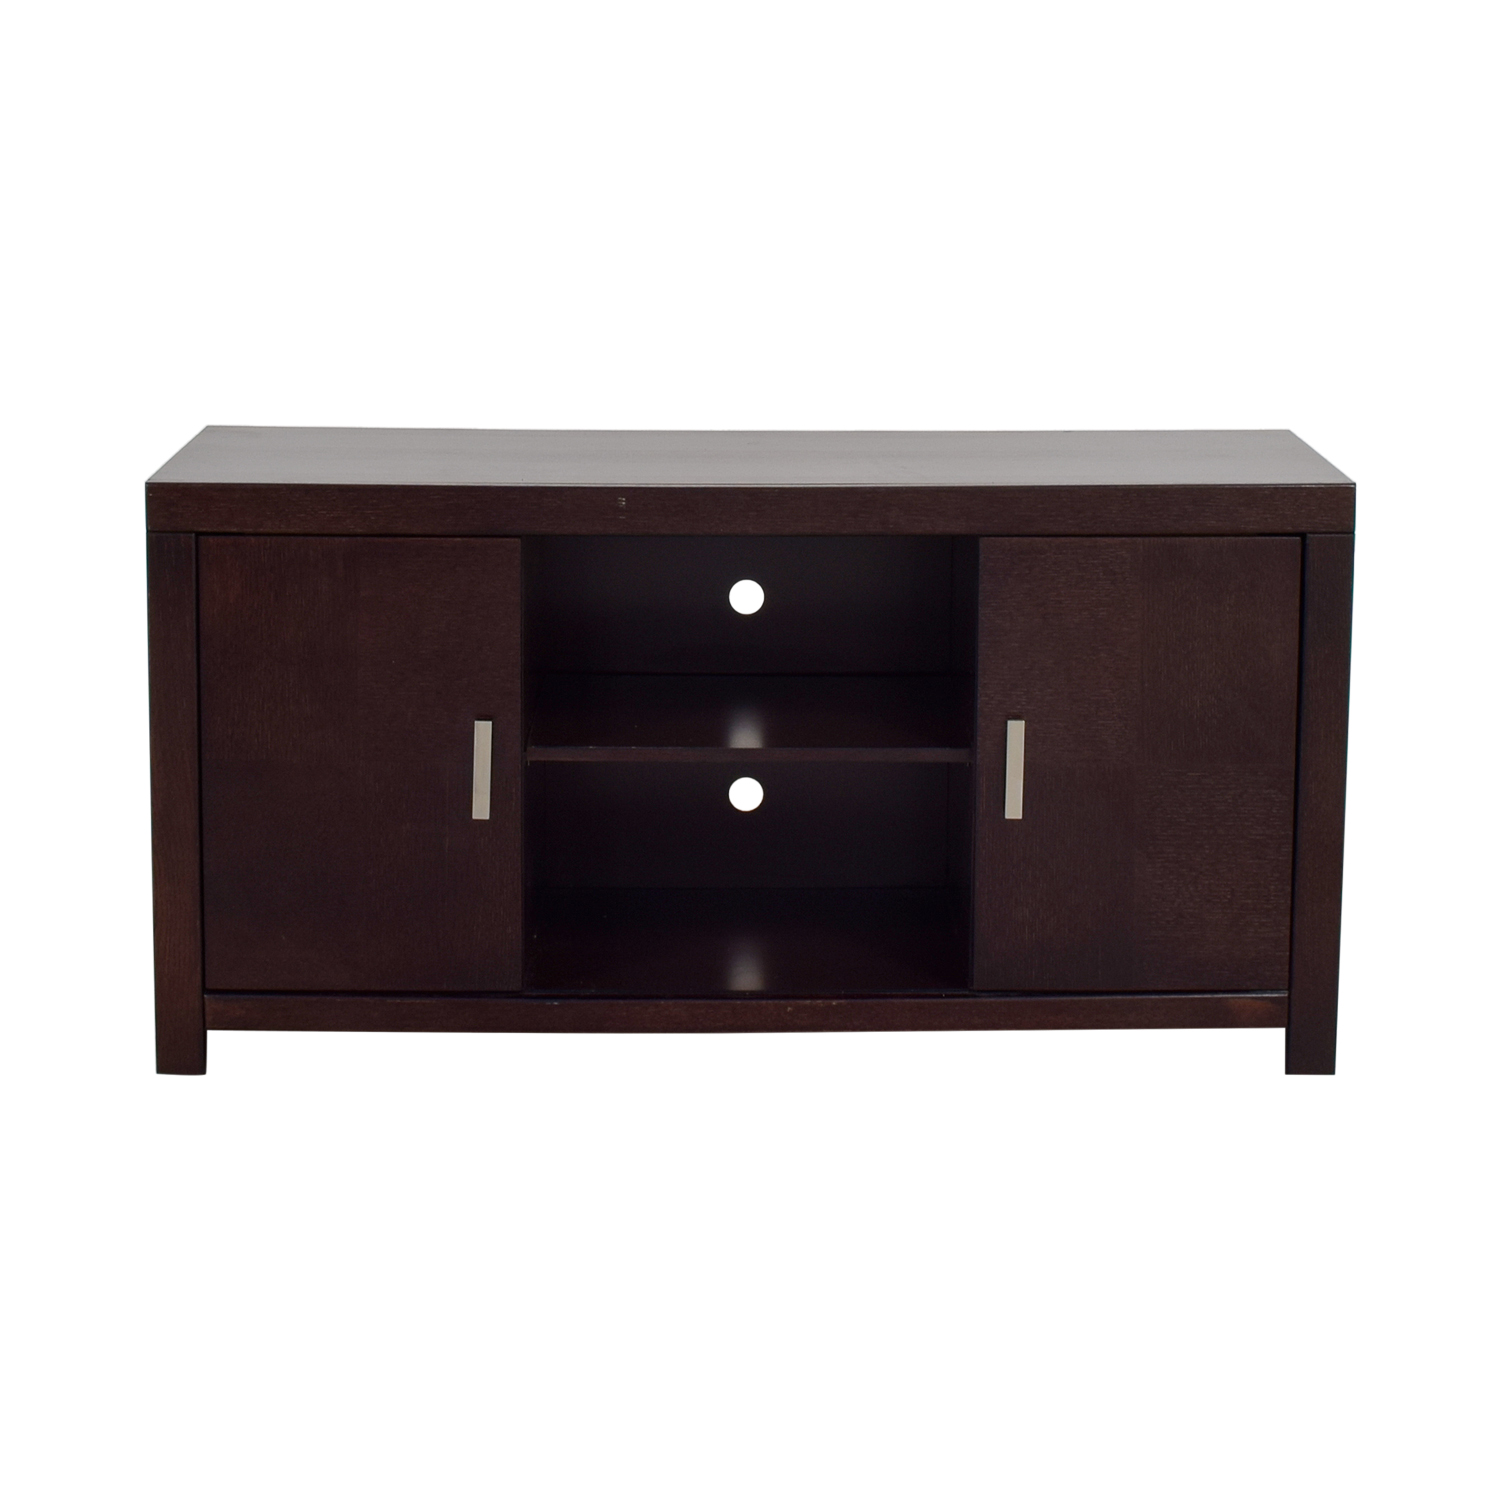 buy Value Furniture Brown TV Stand Value Furniture Storage